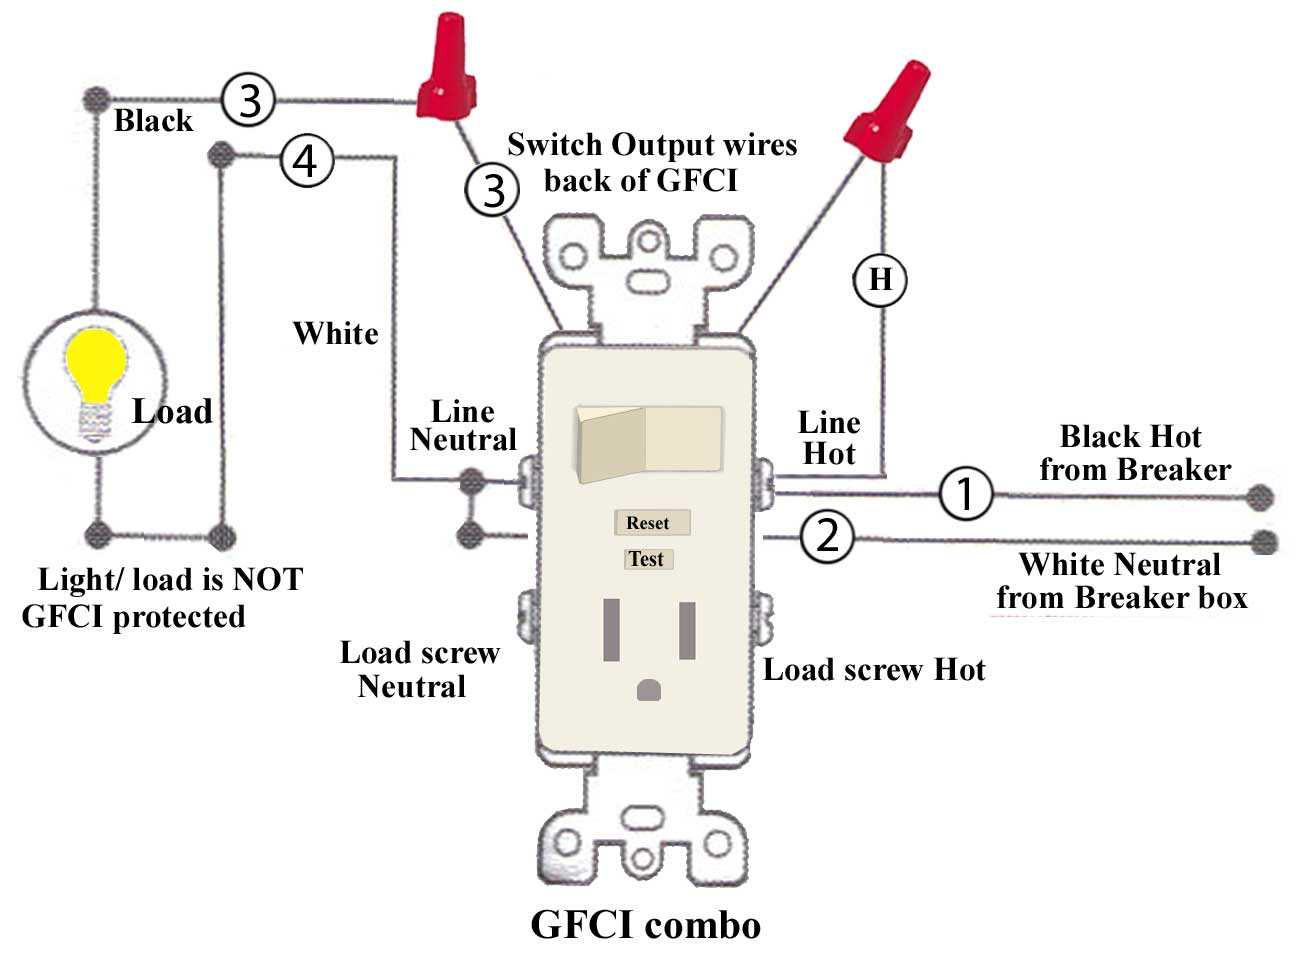 wiring gfci outlet with light switch aquariumwalls org rh aquariumwalls org Combination Switch Outlet Wiring Diagram Wiring a Leviton Combination Switch